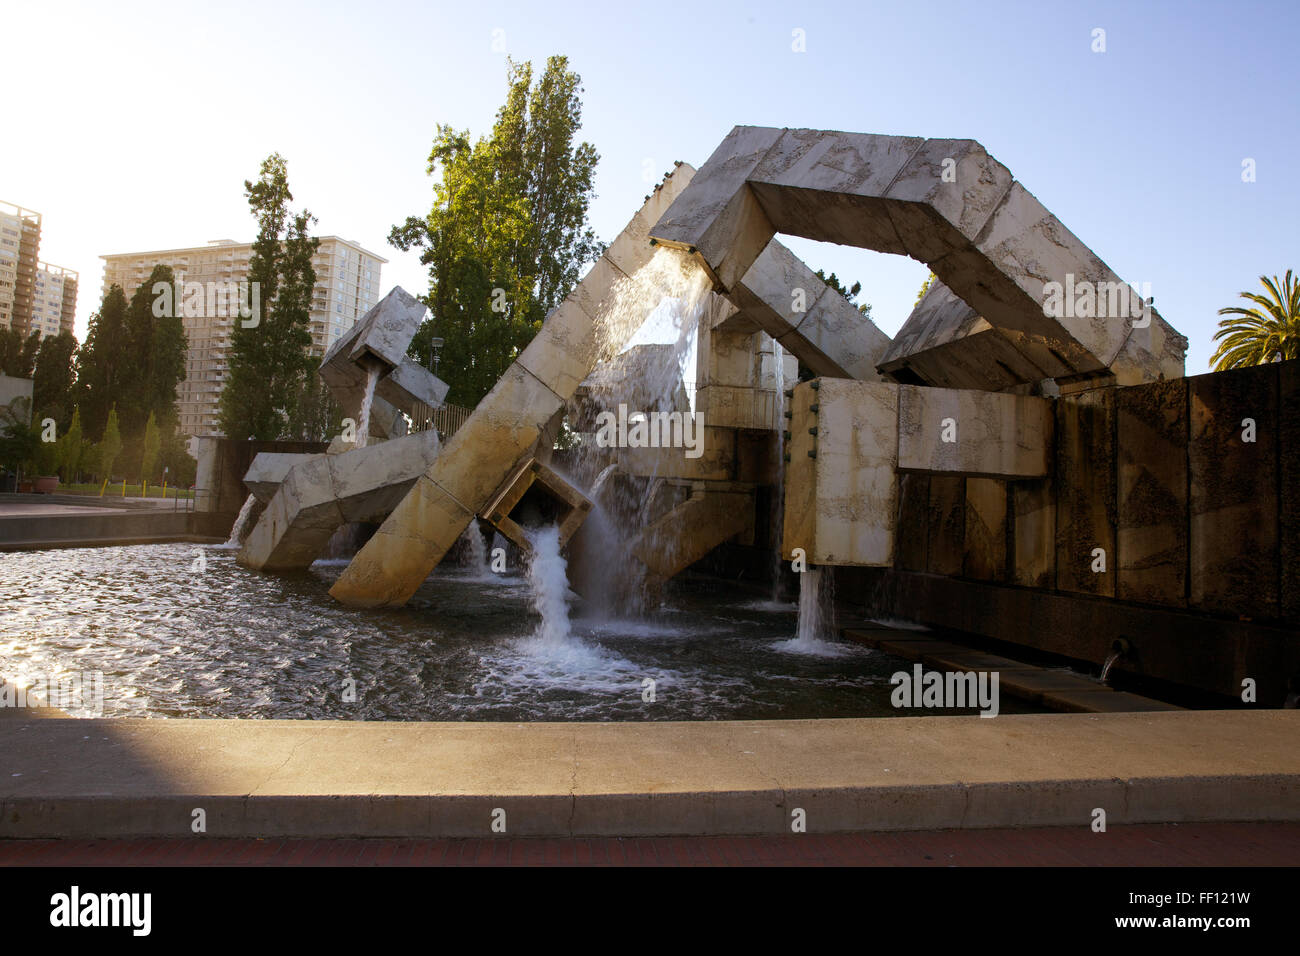 The Vaillancourt Water Fountain in Justin Herman Plaza with water flowing and the sun shining behind it. - Stock Image